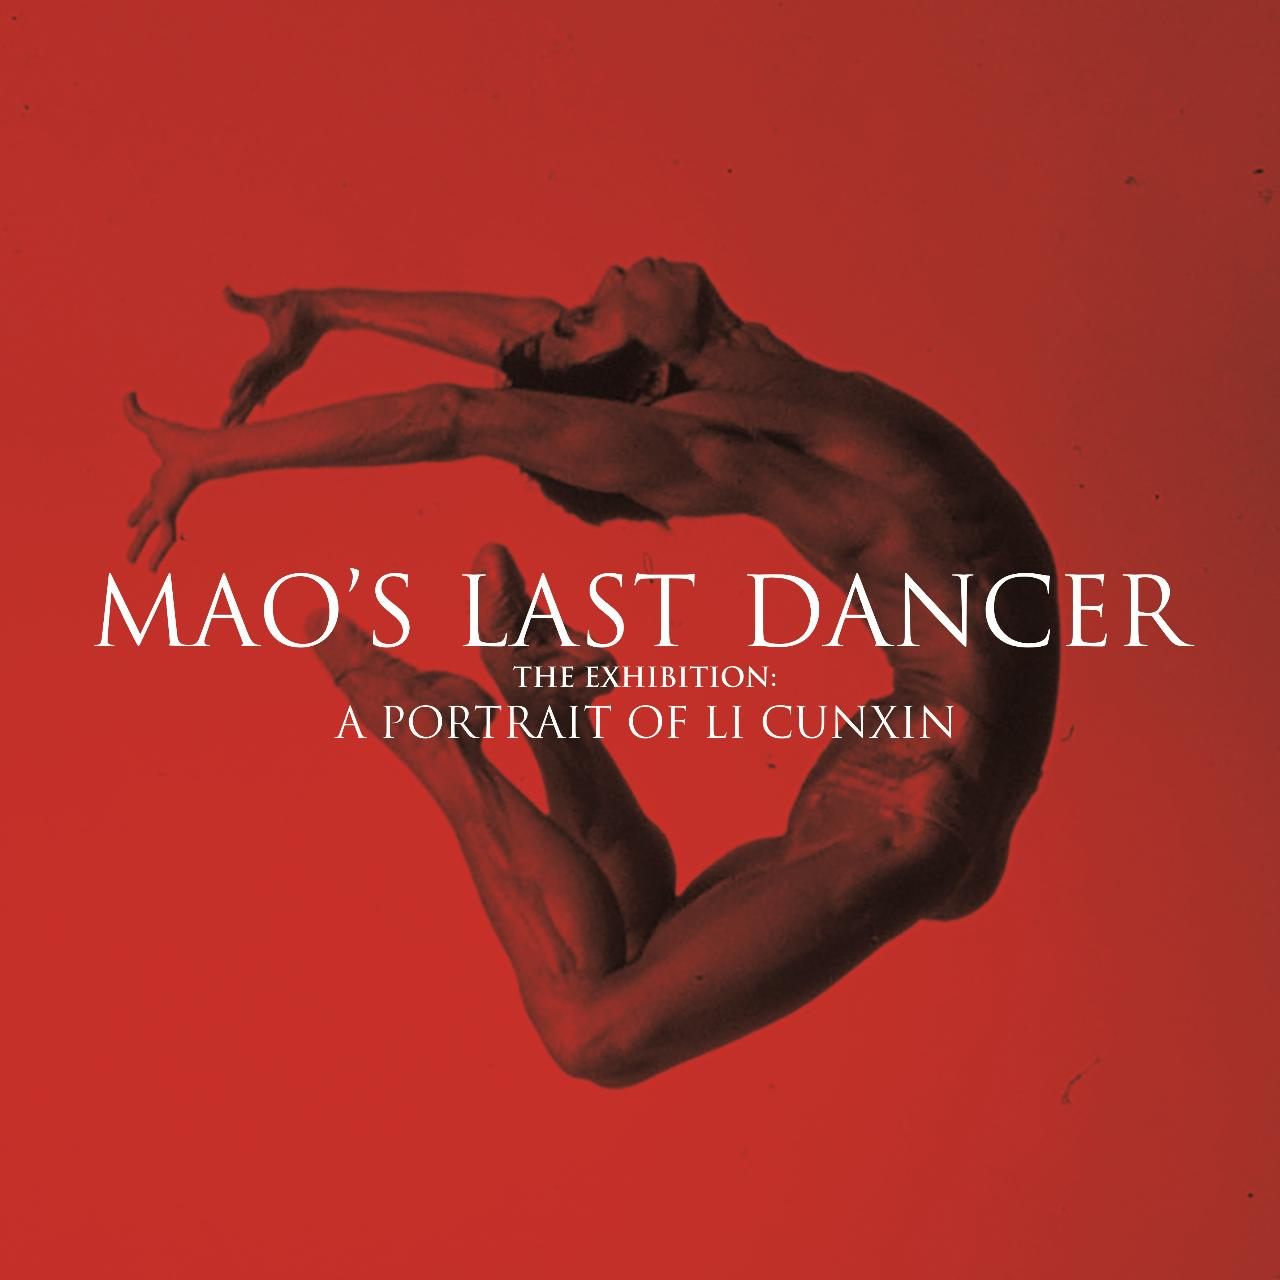 MAO'S LAST DANCER THE EXHIBITION: A PORTRAIT OF LI CUNXIN - Season Pass